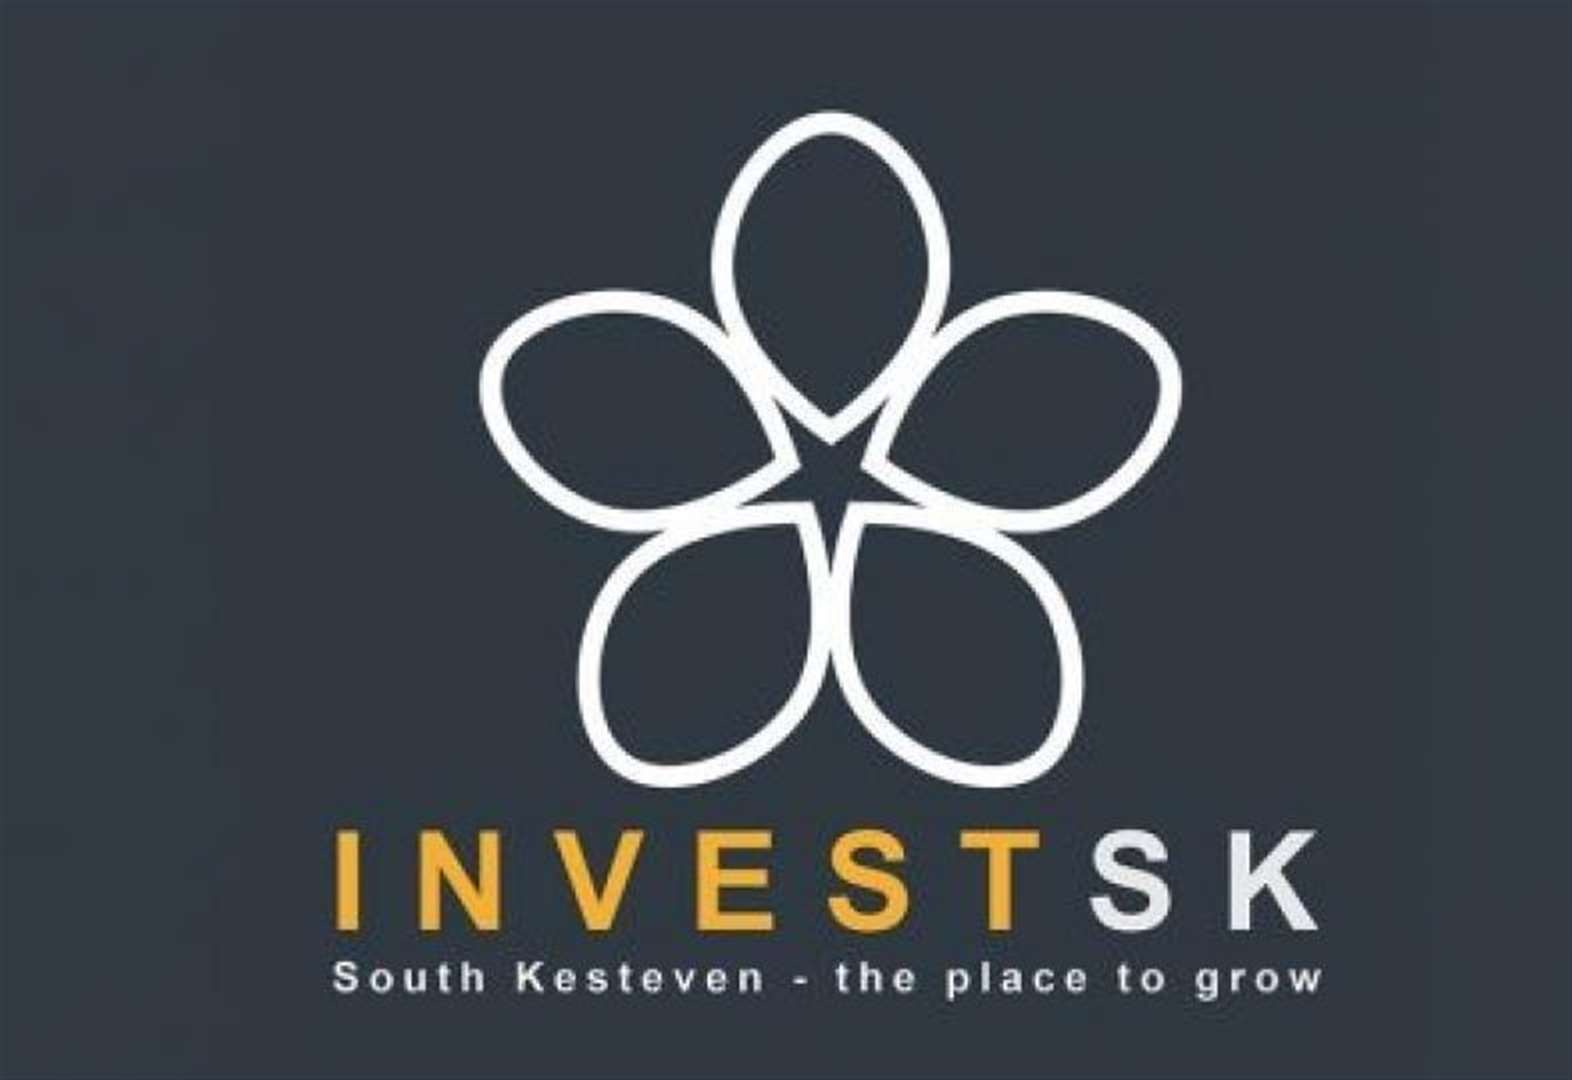 Skills summit to be held by InvestSK